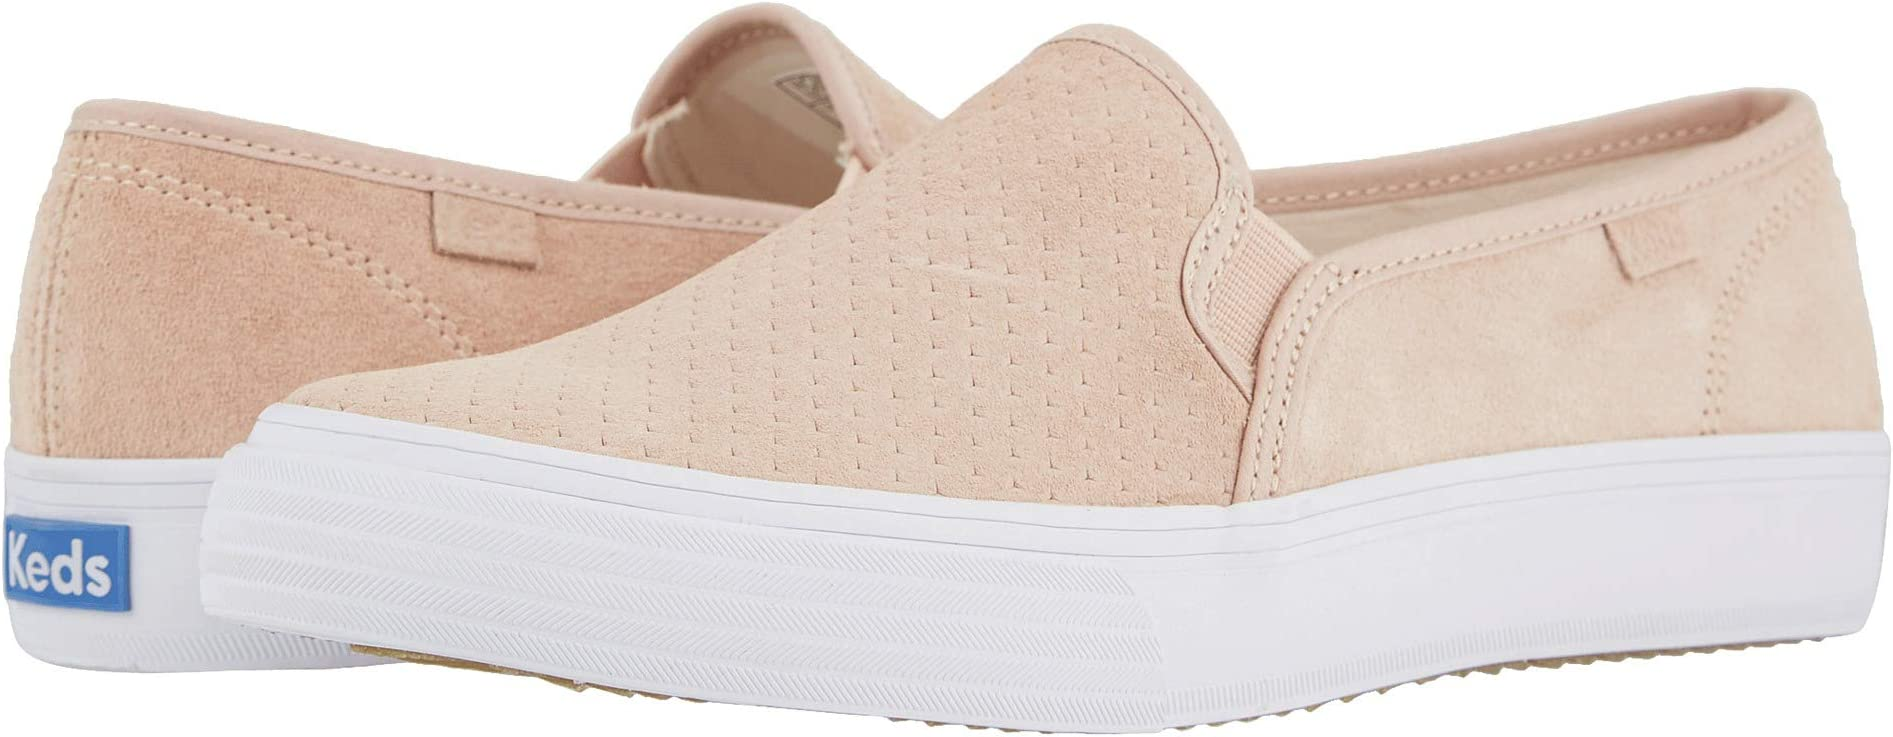 Keds casual and athletic footwear | Zappos.com